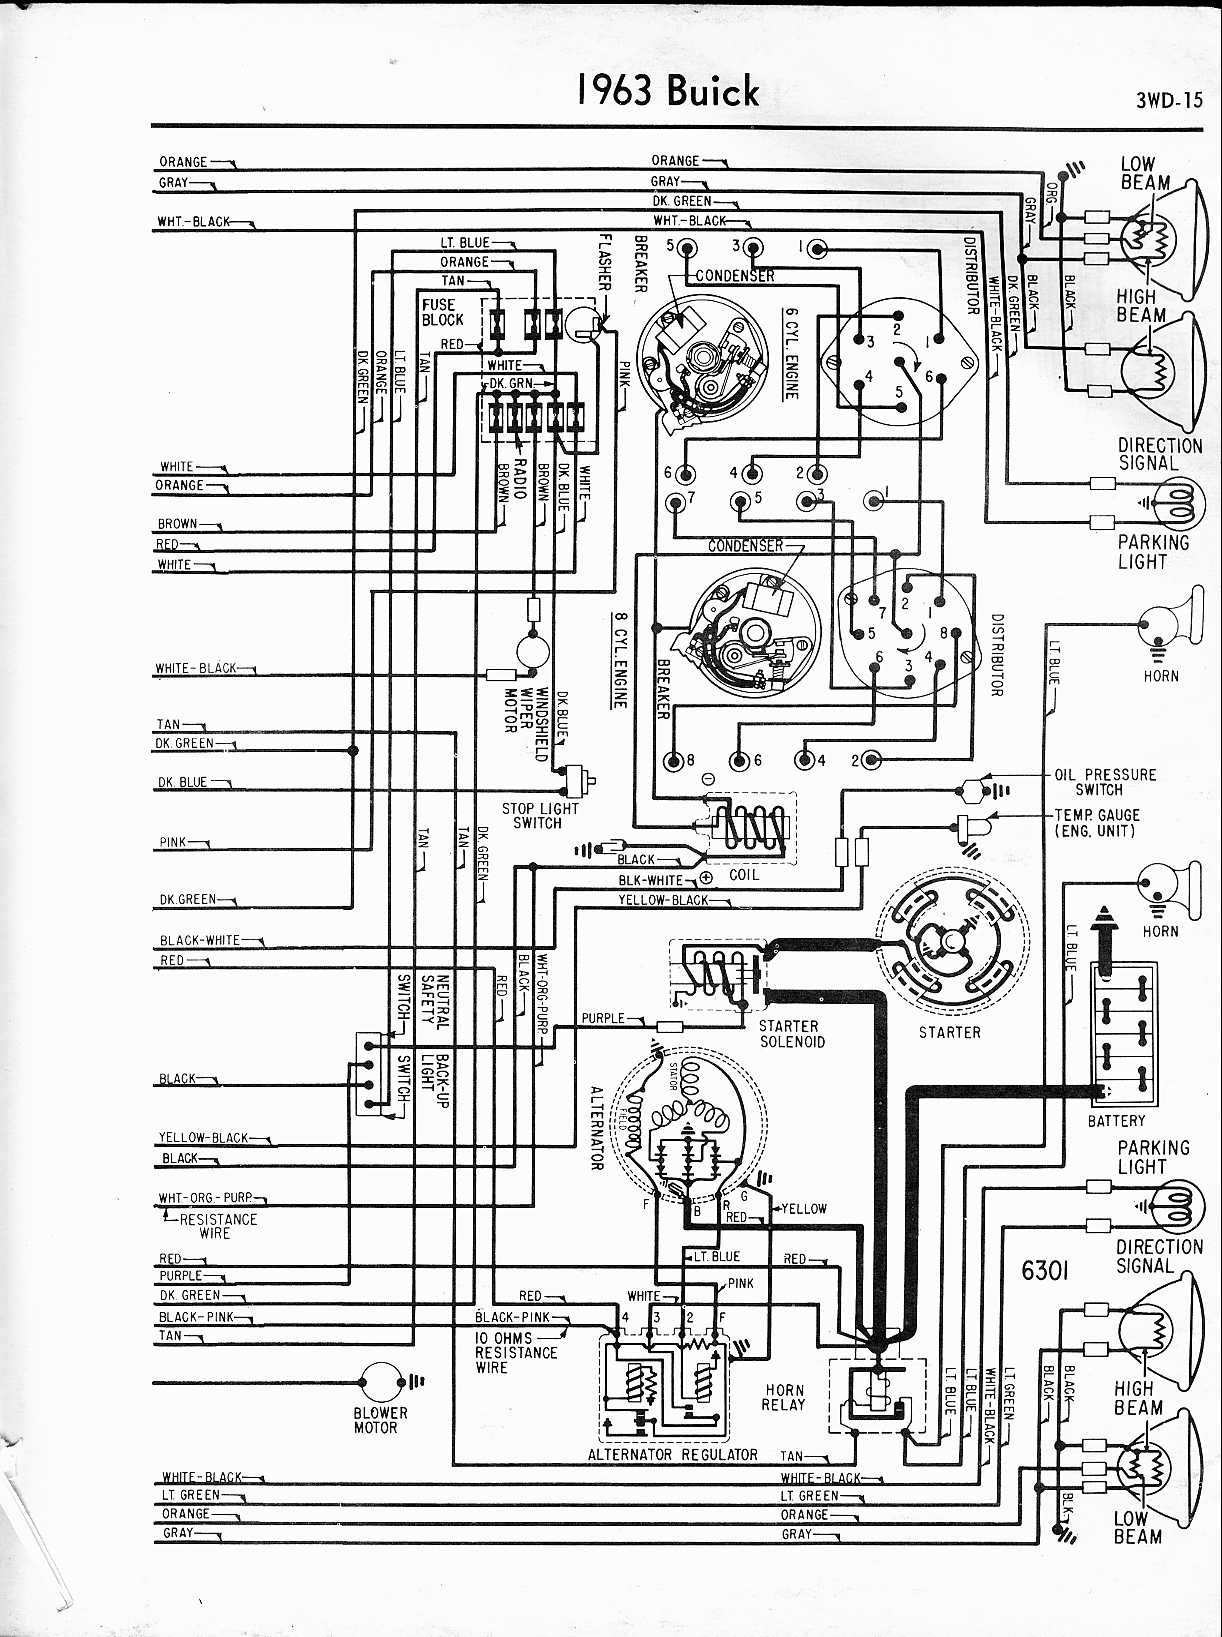 MWireBuic65_3WD 015 buick wiring diagrams 1957 1965 1963 C10 Wiring Diagram at arjmand.co